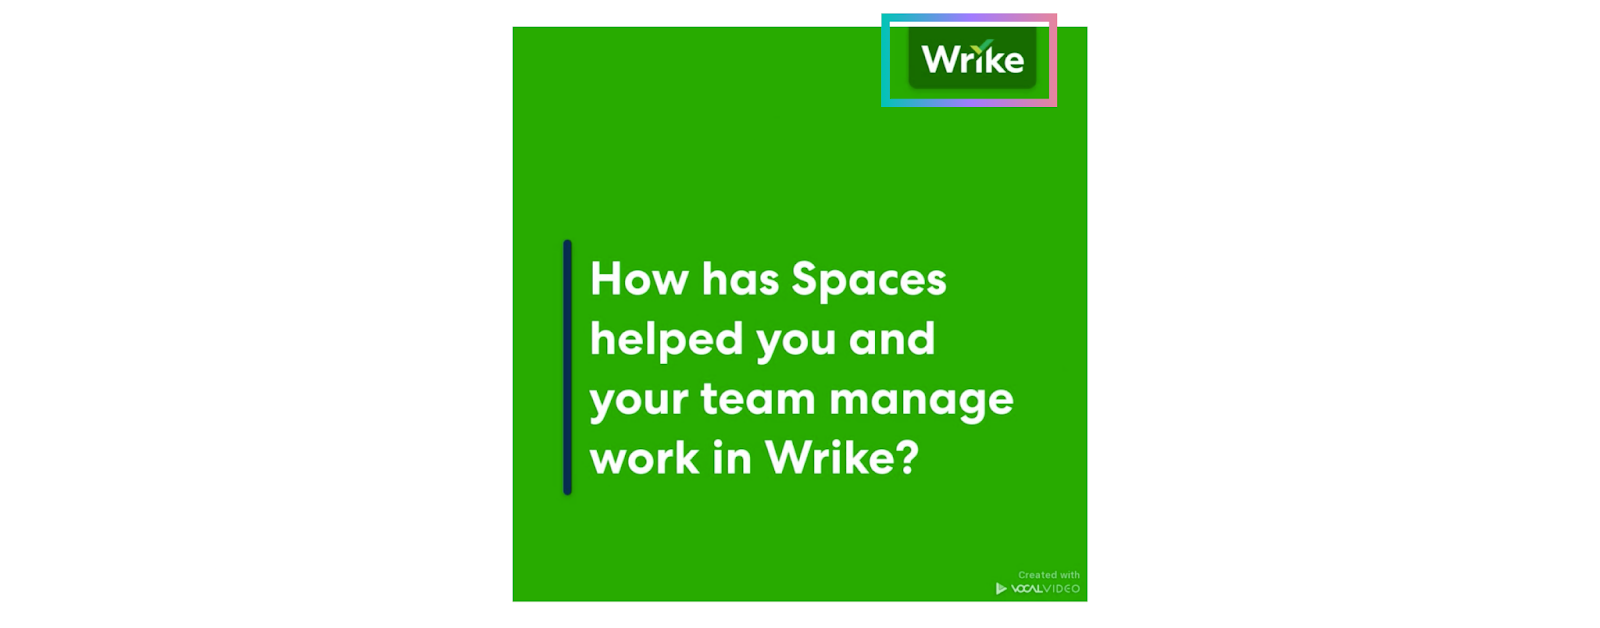 """With Vocal Video, you upload your logo once and it's added to the top corner for all videos: """"How has spaces helped you and your team manage work in Wrike?"""""""